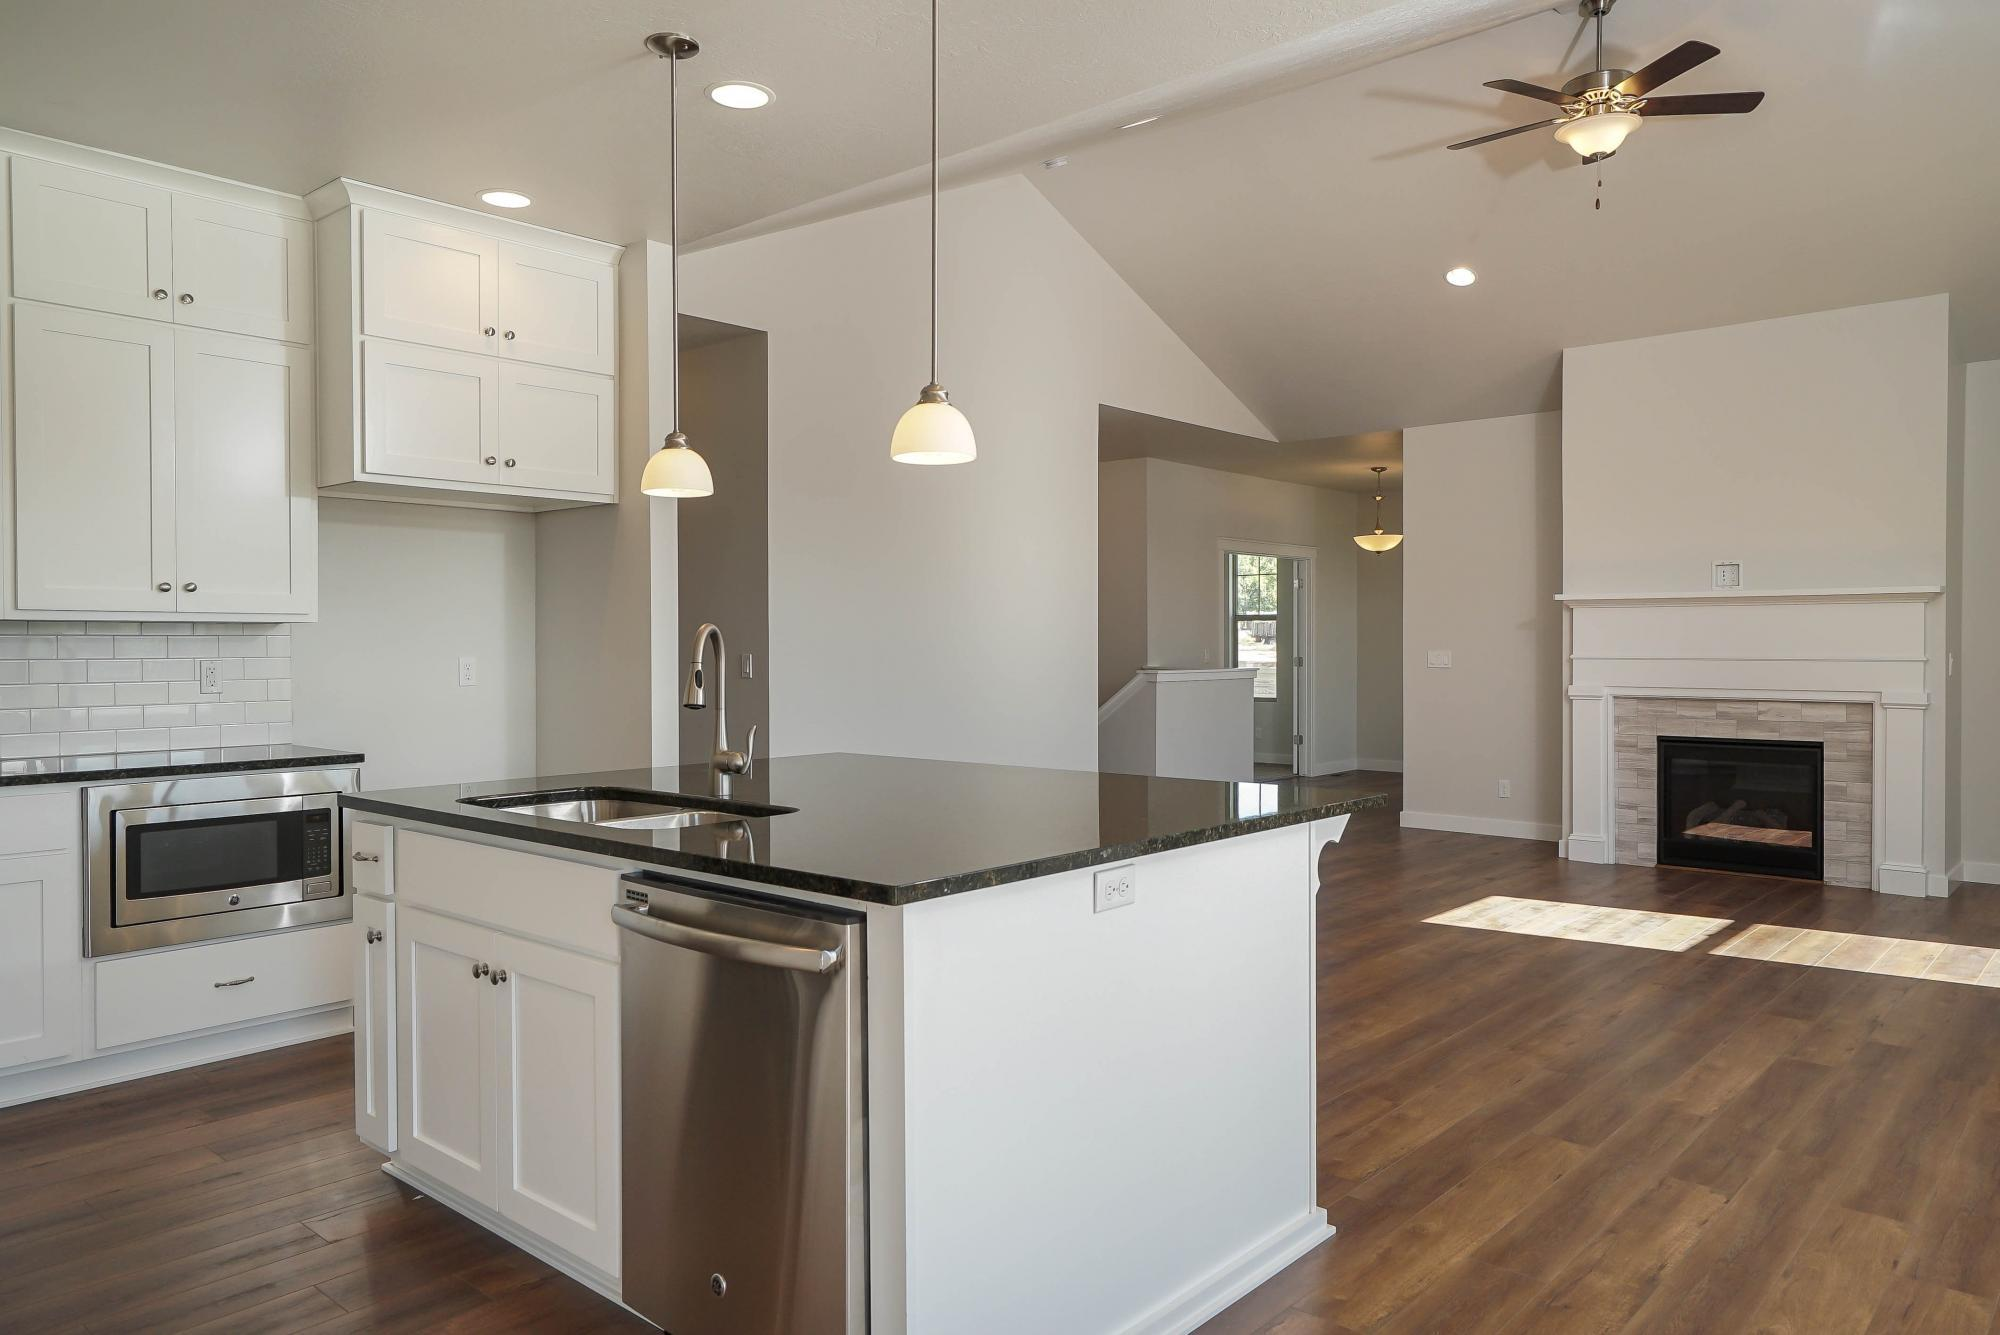 Kitchen featured in the Lakeville By Destination Homes in Salt Lake City-Ogden, UT